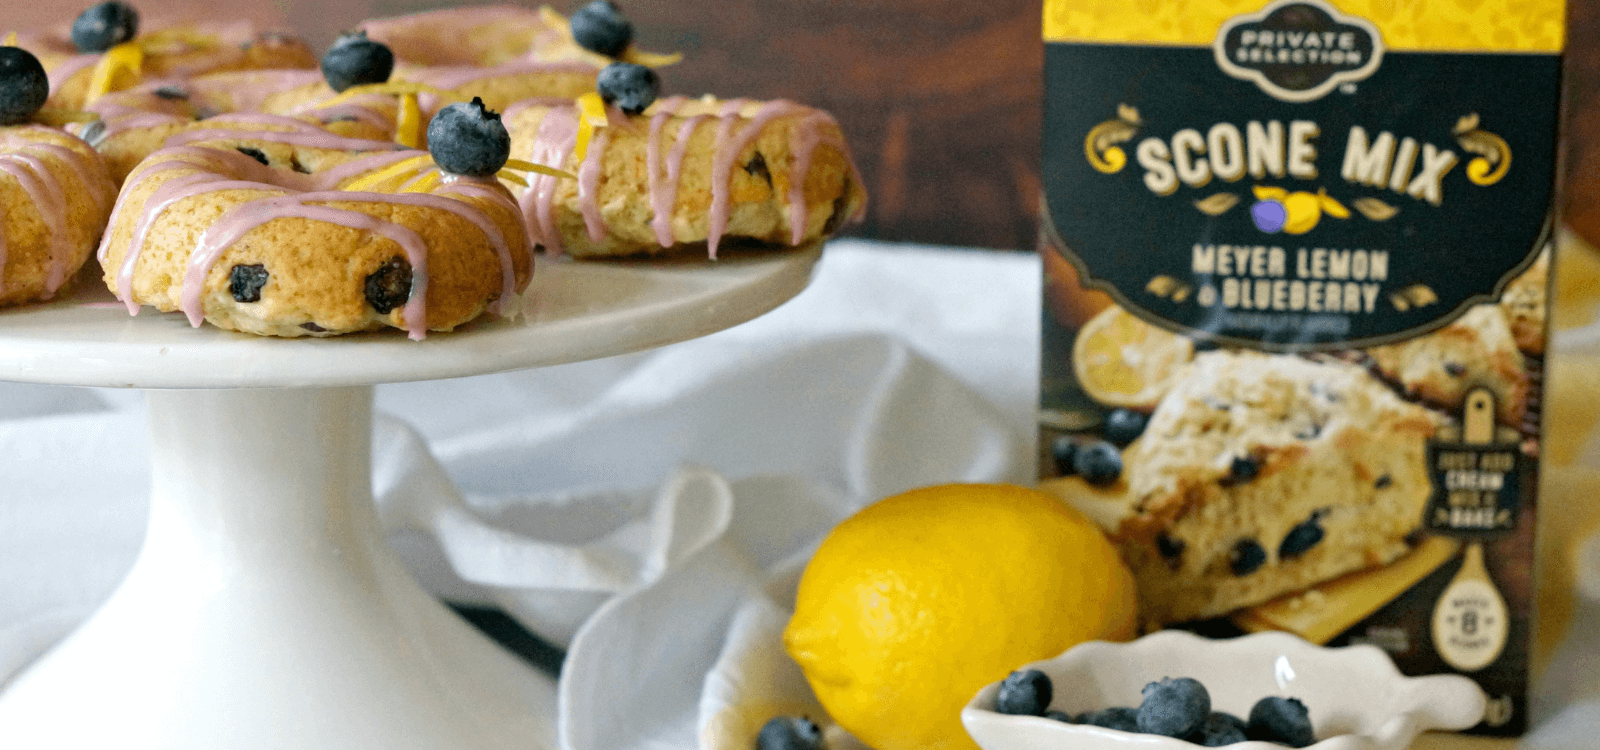 Lemon Blueberry Sconuts